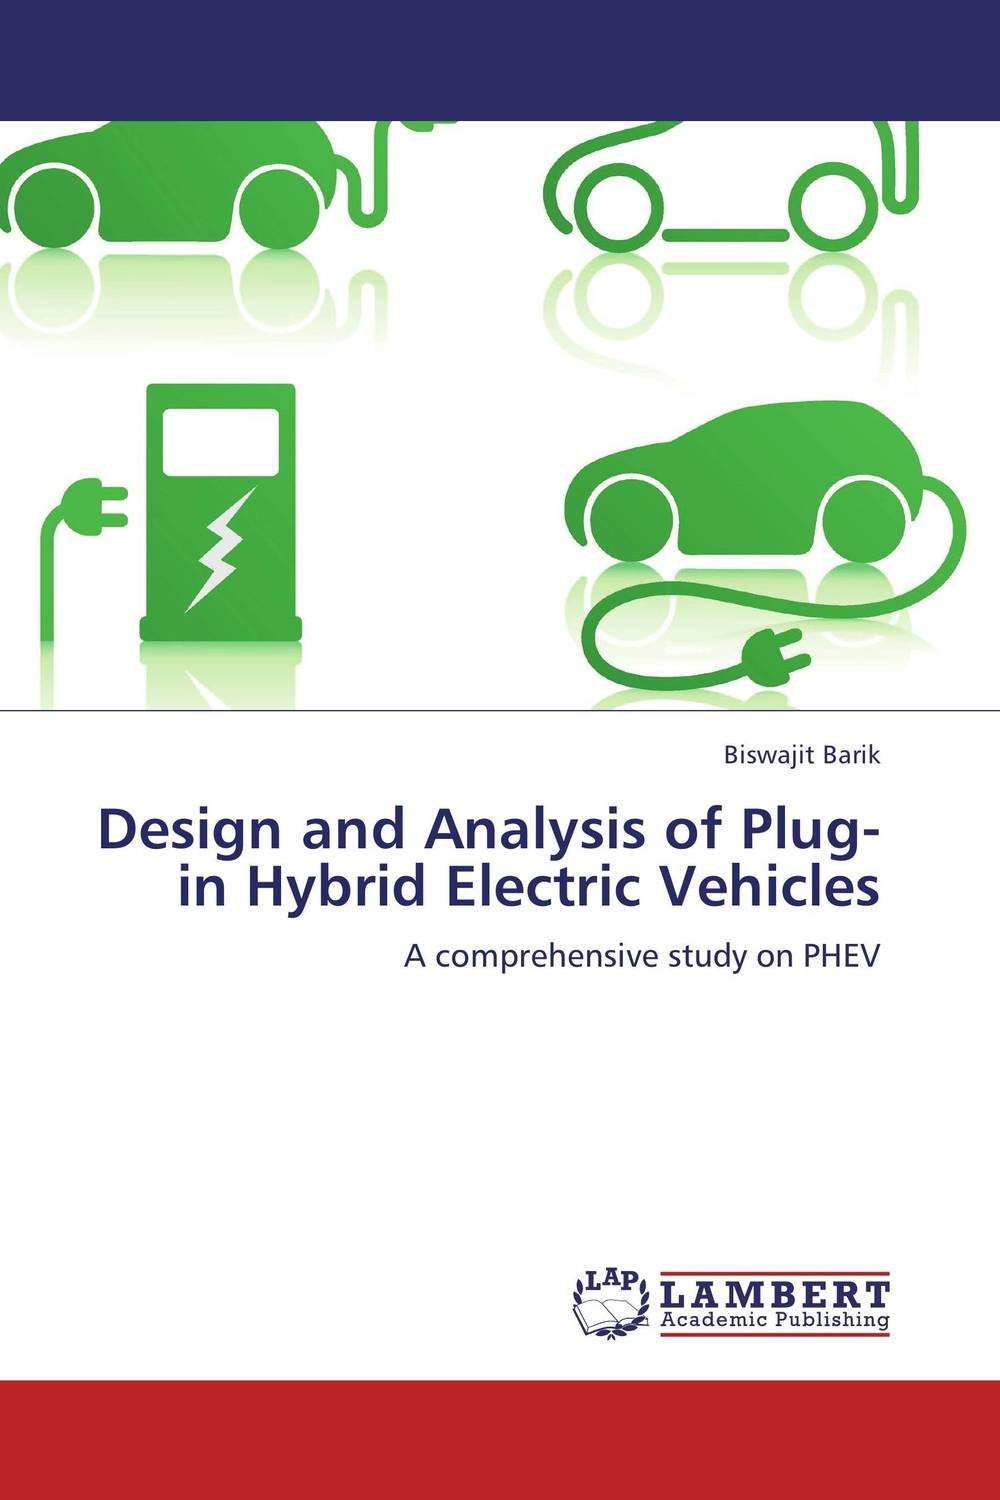 Design and Analysis of Plug-in Hybrid Electric Vehicles driven to distraction